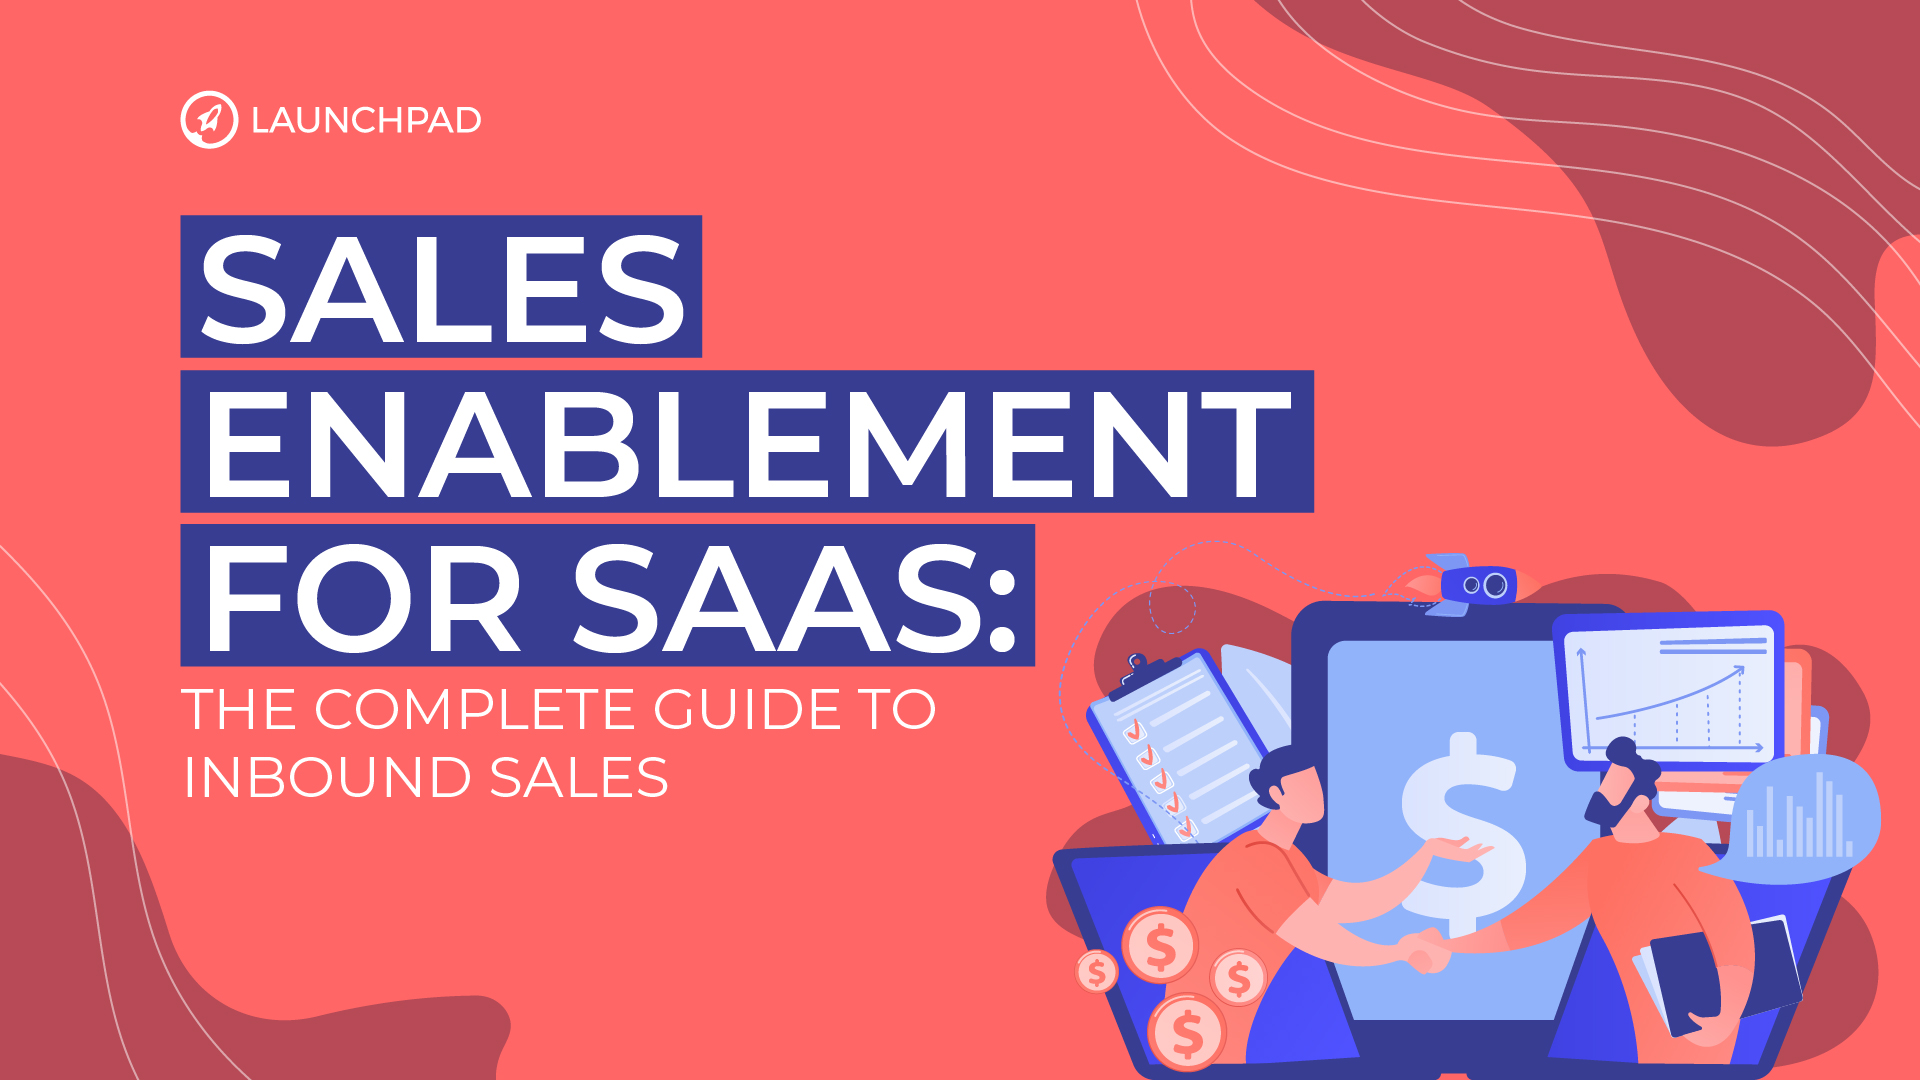 [Cornerstone Article] Sales Enablement for SaaS- The Complete Guide to Inbound Sales -02